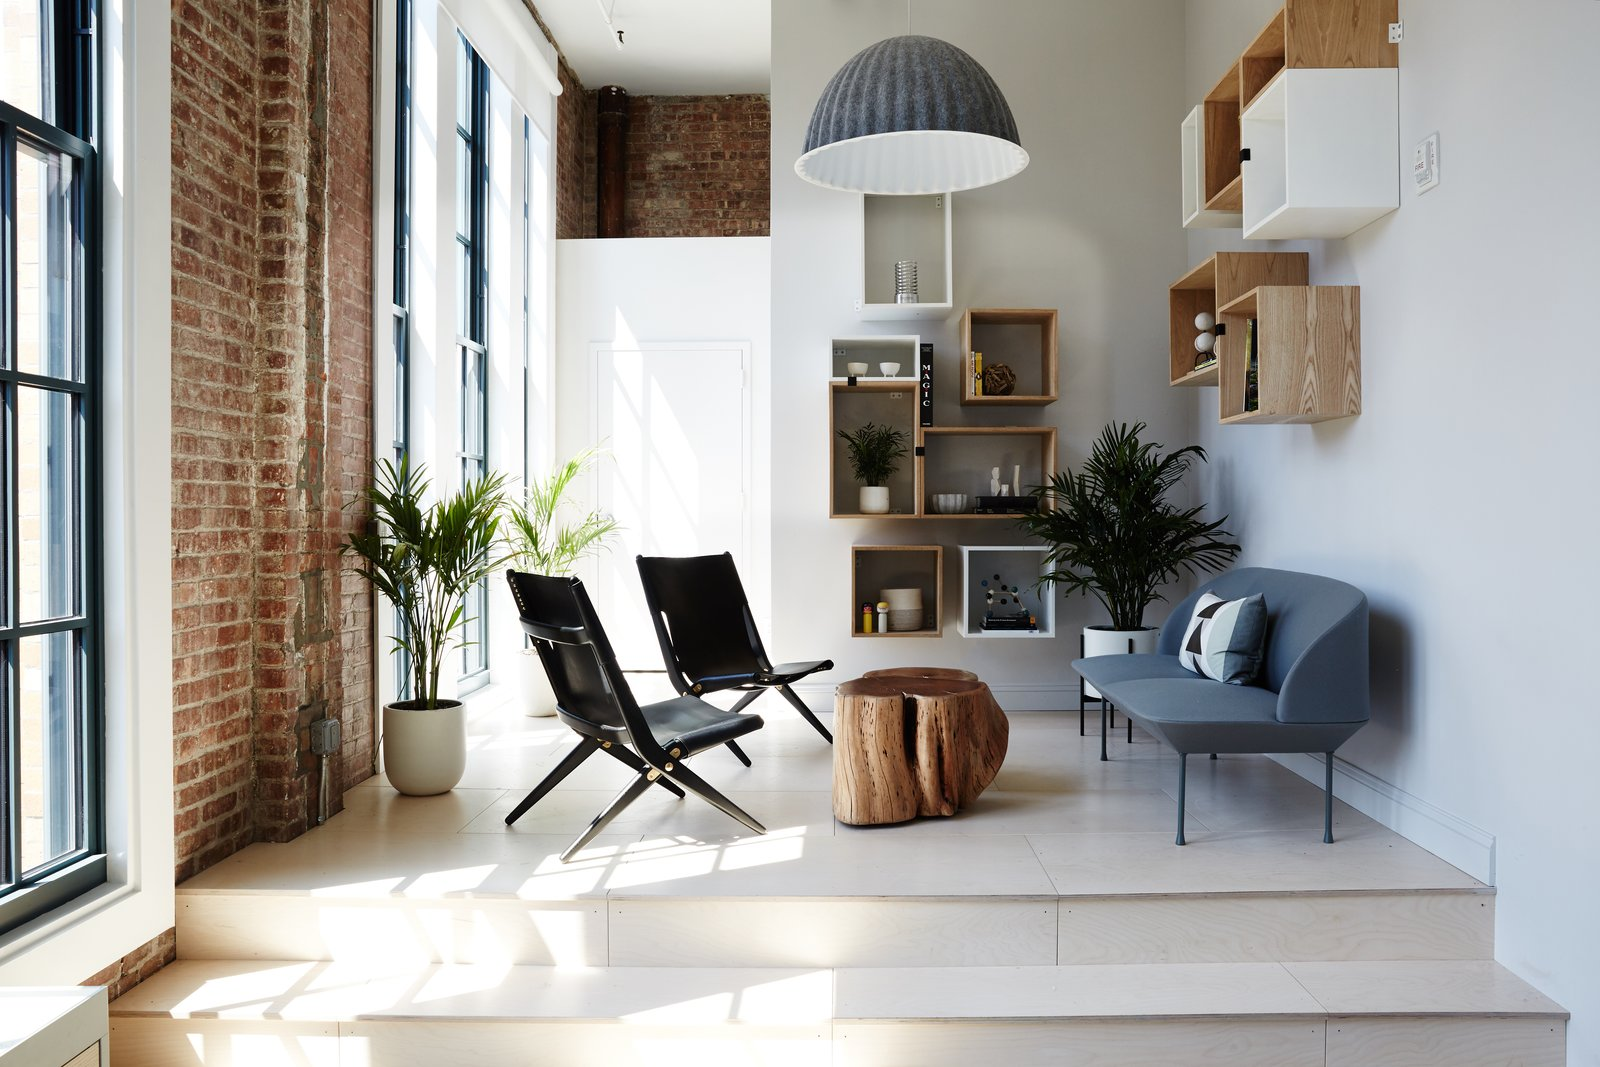 The library features a Muuto Oslo Sofa and Lassen Saxe Chairs. Exposed brick and generous windows are reminders of the warehouse setting.  Photo 6 of 12 in Space to Work, Room to Play